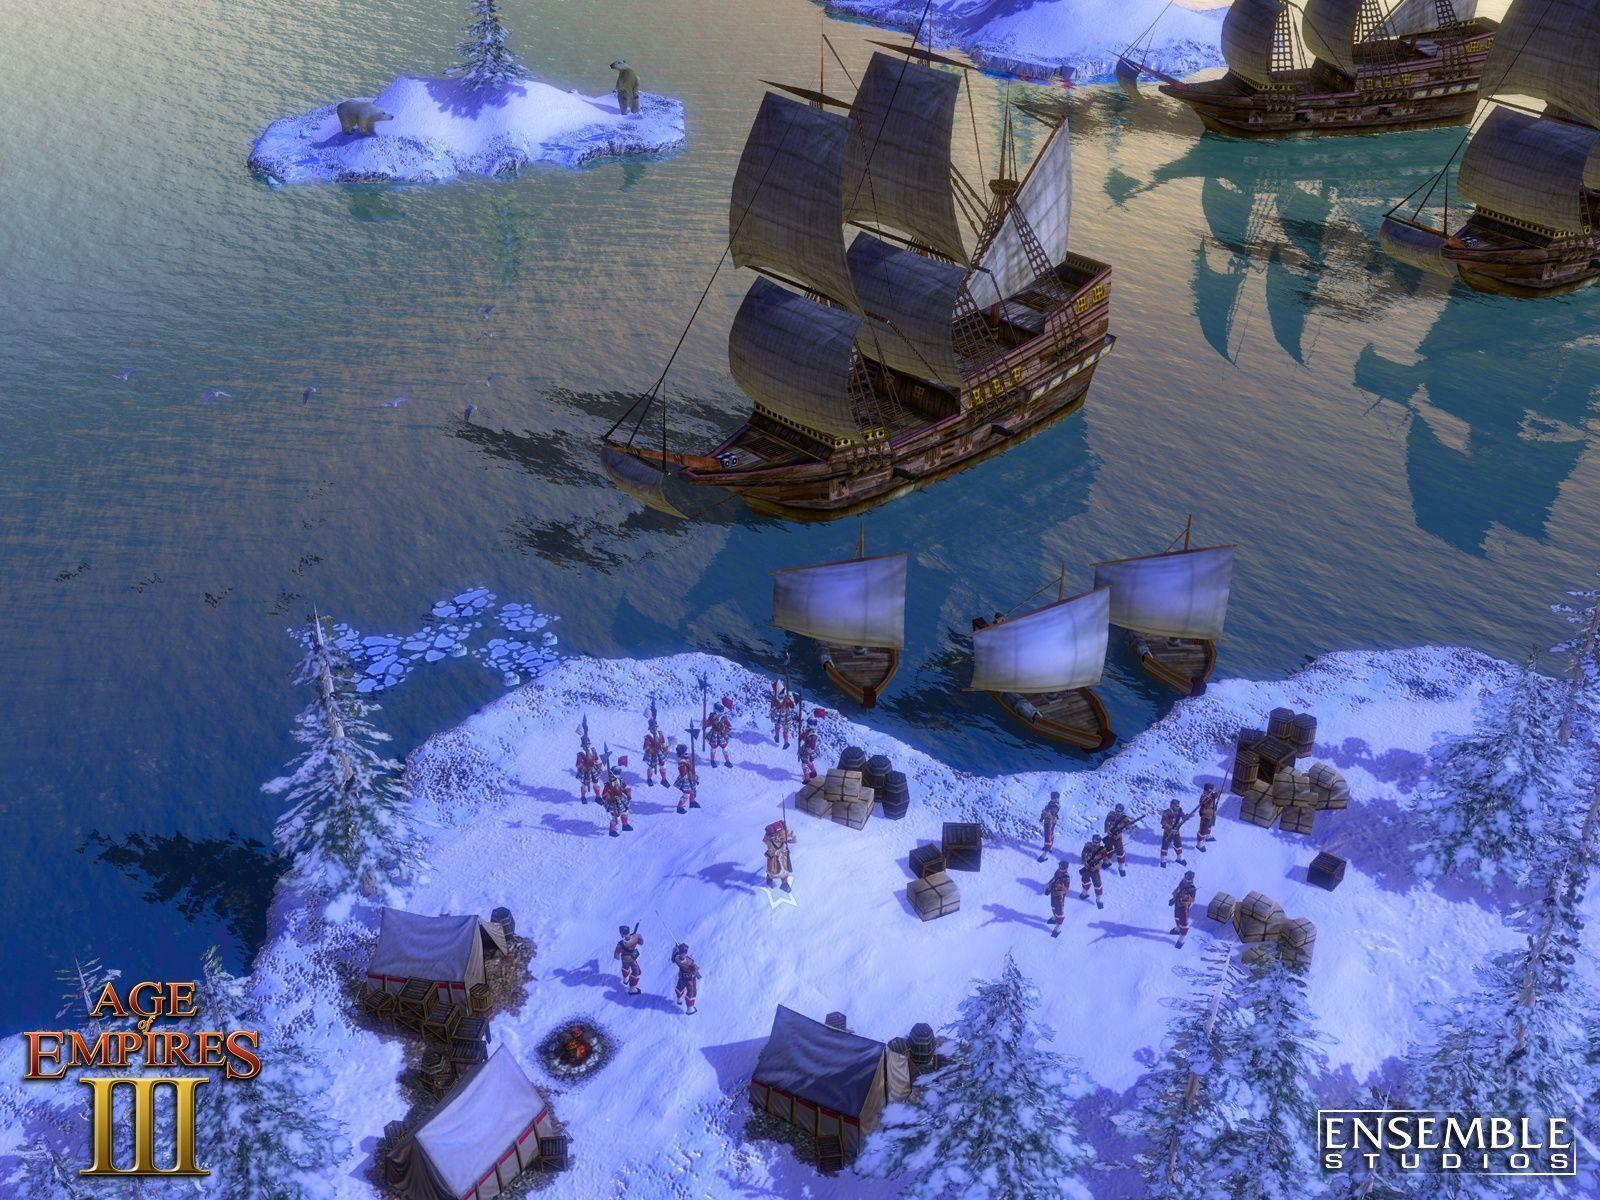 Age of Empires III wallpapers | Age of Empires III stock photos